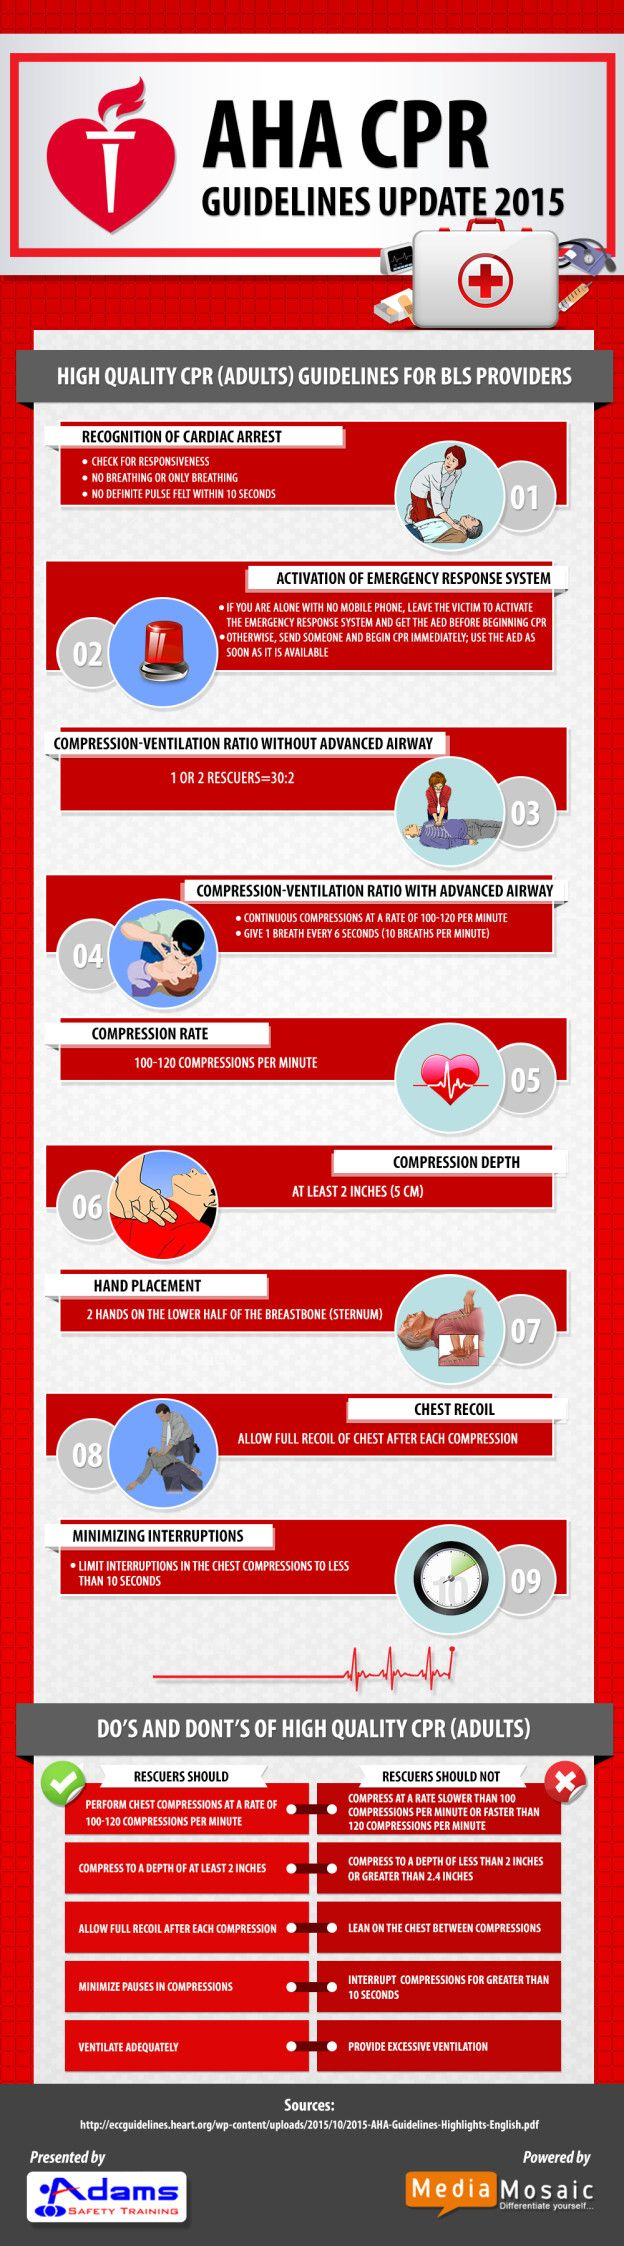 Best 25 cpr training online ideas on pinterest dog training best 25 cpr training online ideas on pinterest dog training dog having puppies and a puppy 1betcityfo Images